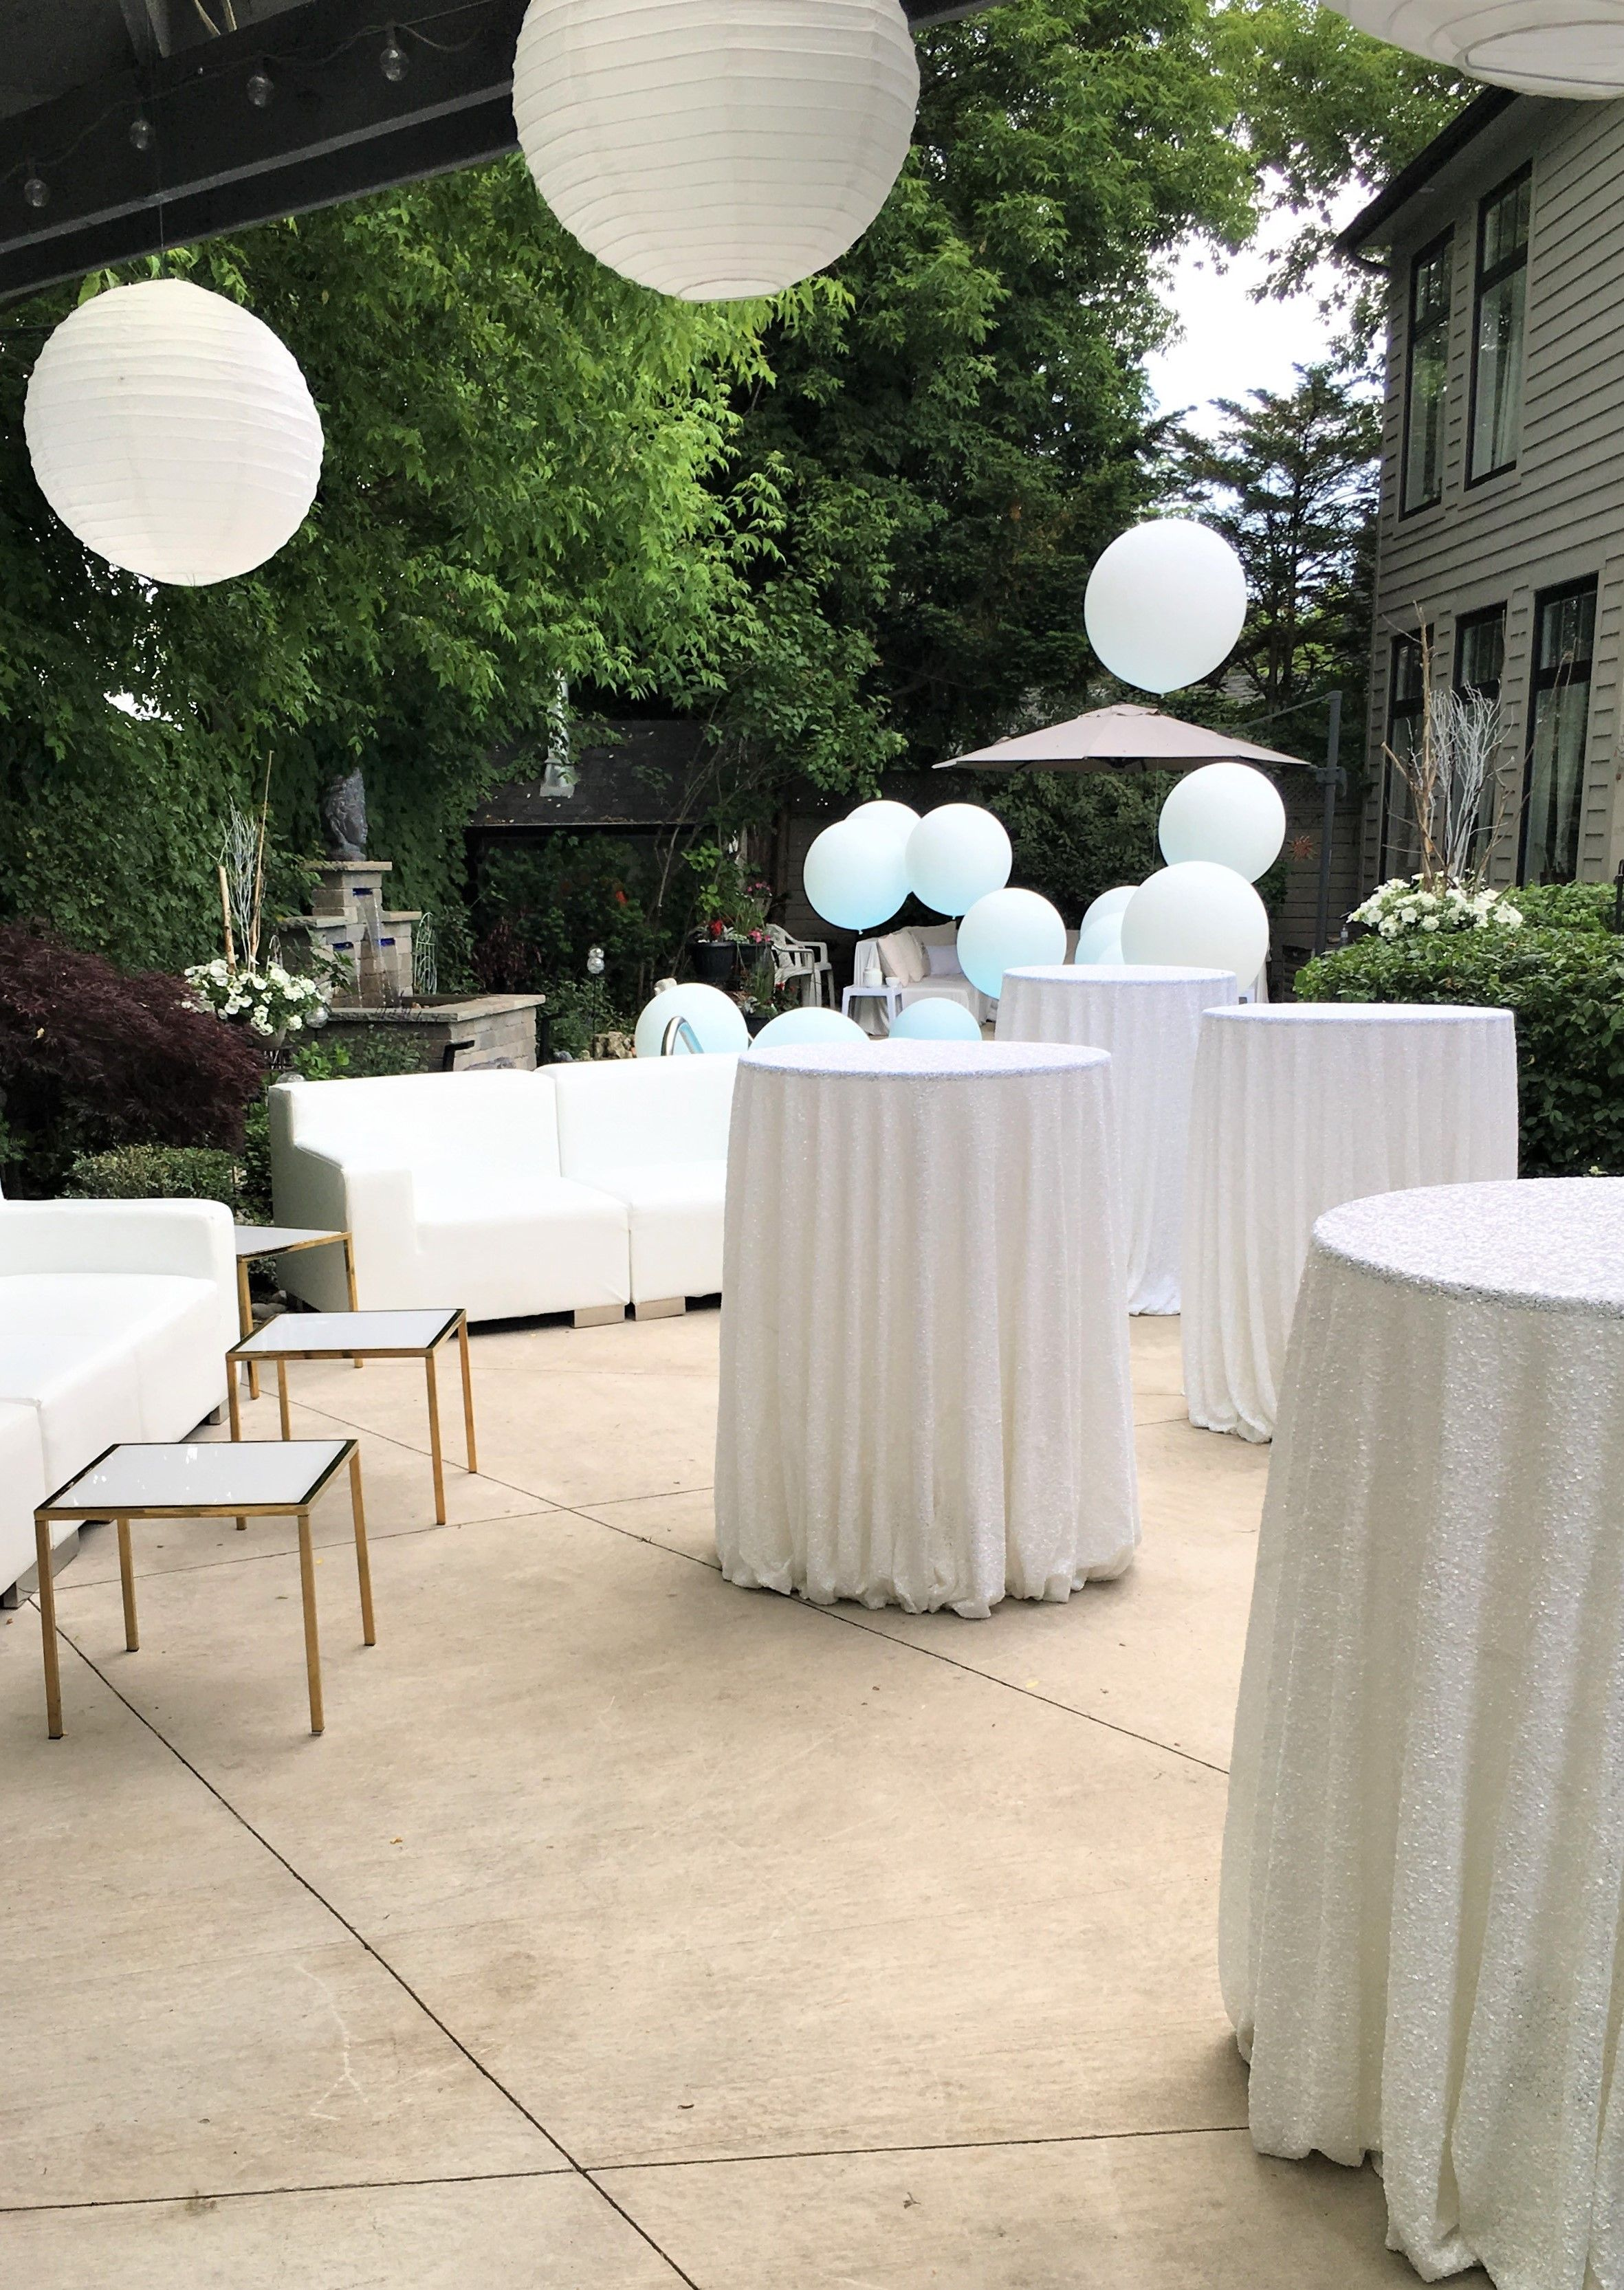 All White Backyard Birthday Party Toronto On Planning Design Blissful Memories Events Ball Backyard Birthday Backyard Birthday Parties White Balloons